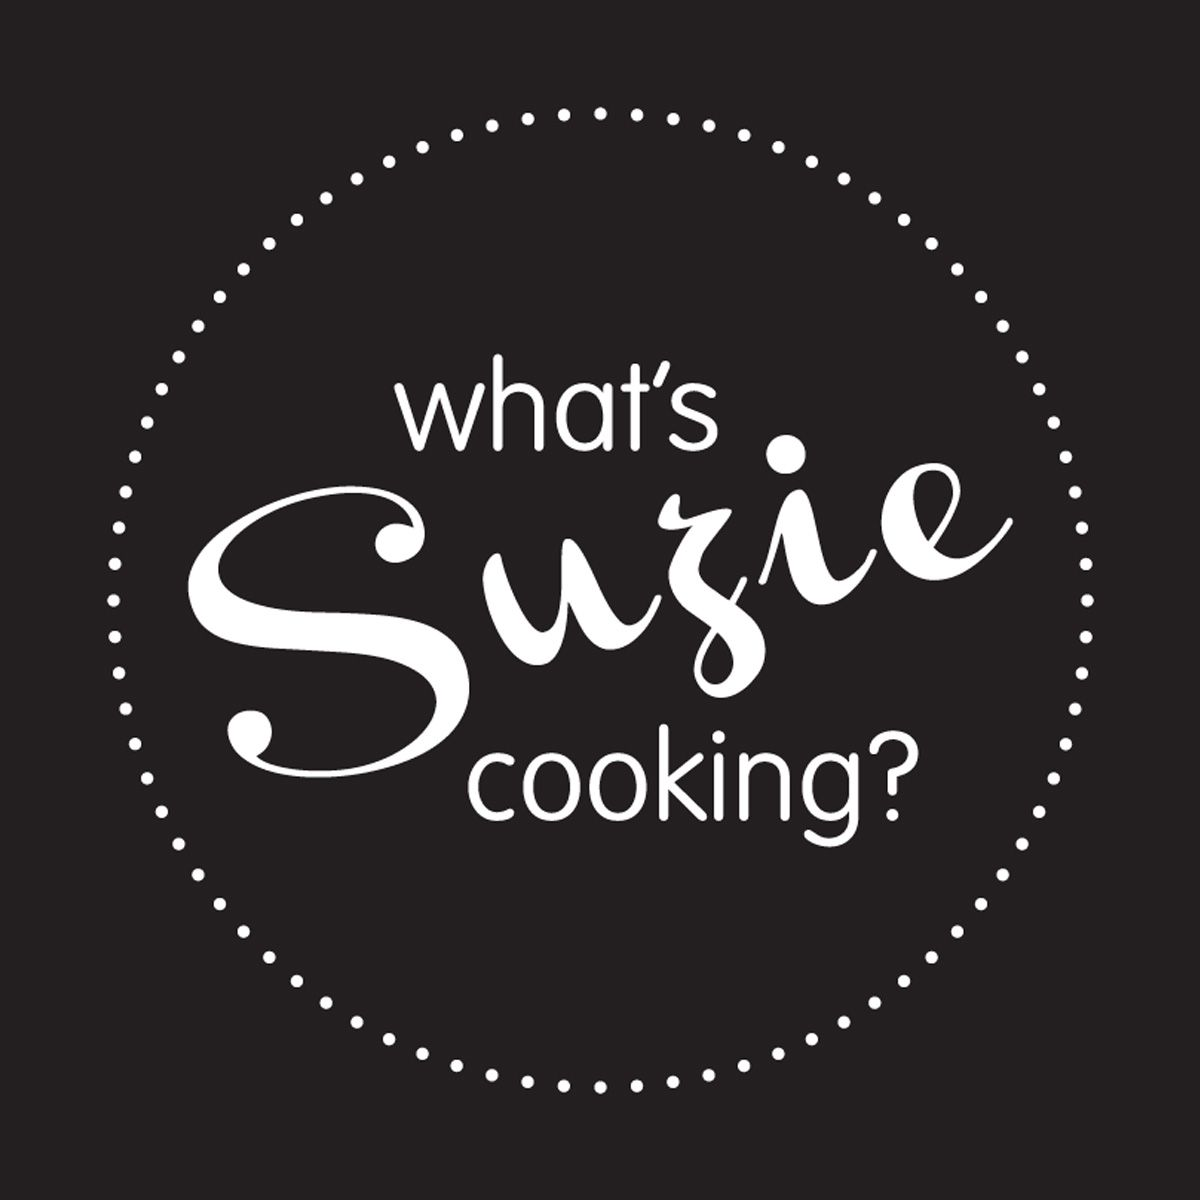 whats-suzie-cooking-logo_1200x1200